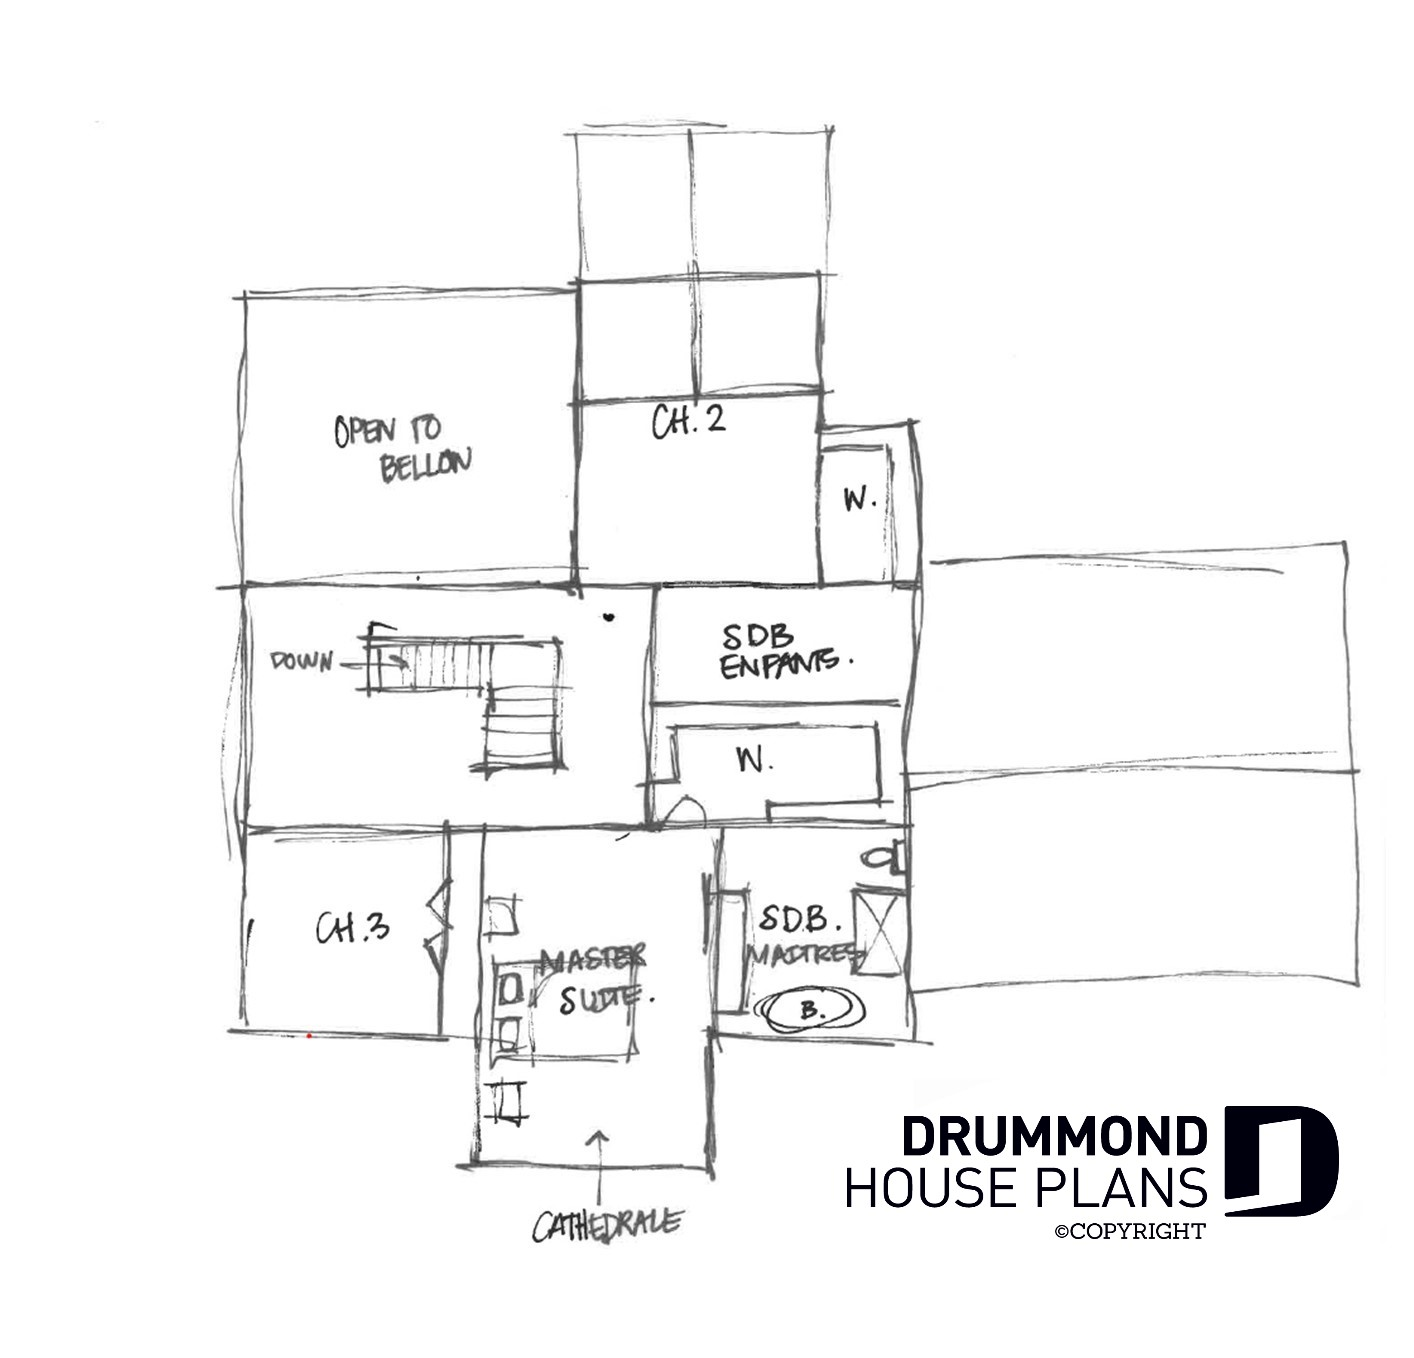 Sketch of second floor for Alicia Moffet dream farmhouse house plan.